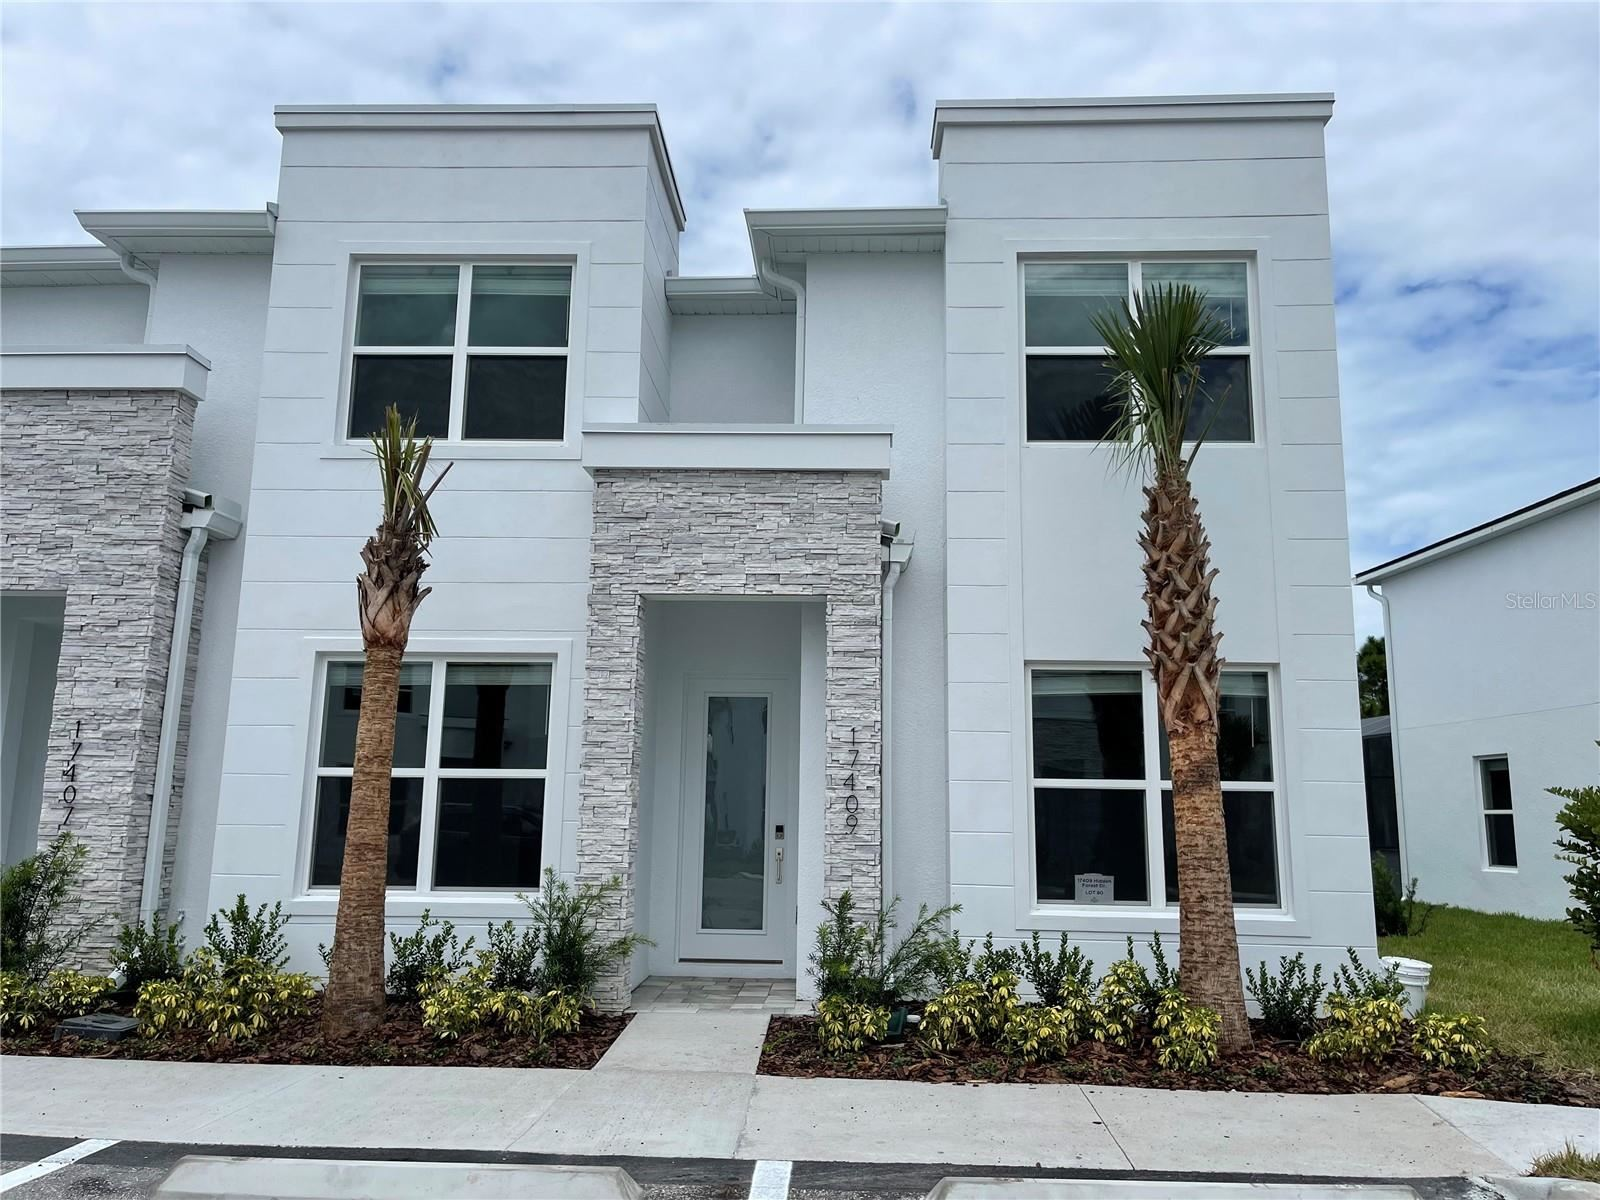 Photo of 17409 HIDDEN FOREST DRIVE, CLERMONT, FL 34714 (MLS # S5056766)